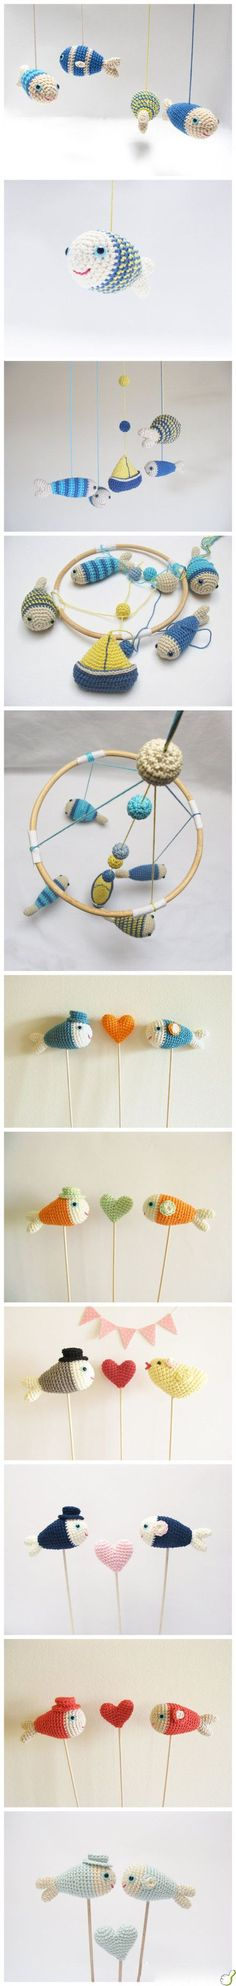 Monroe Crochet Patterns: Crochet mobile